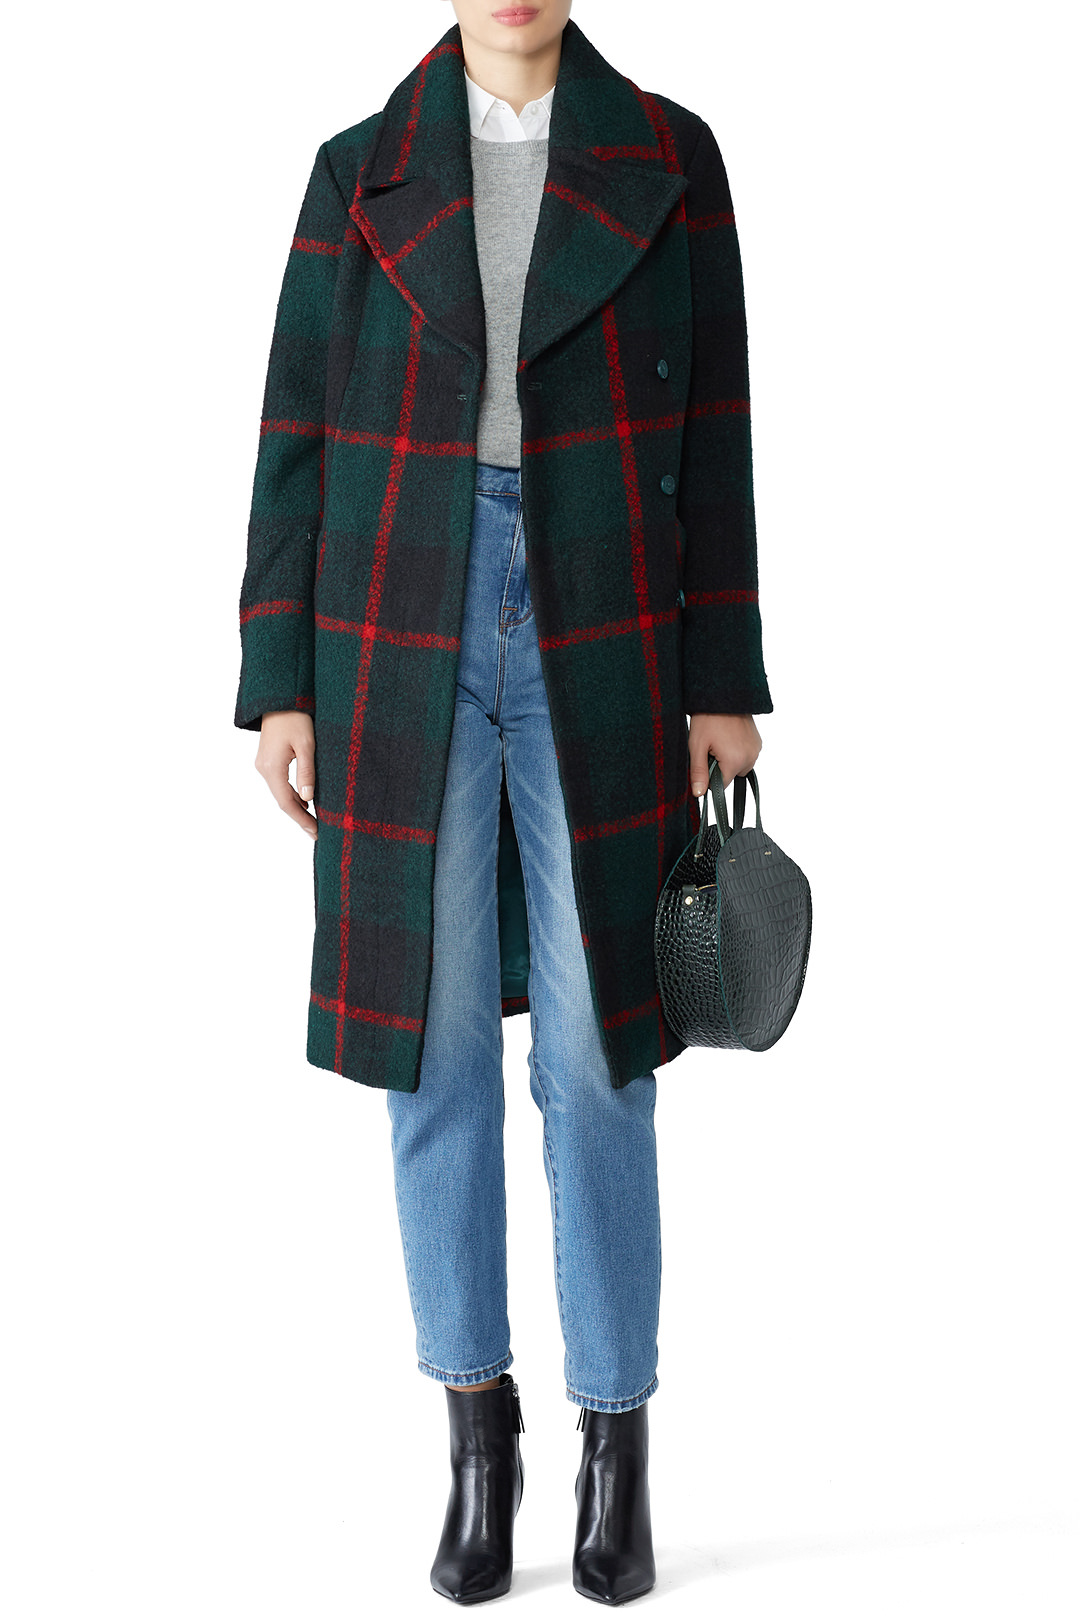 Just Female Green Check Emeline Coat - Going to Ireland? Wear this.